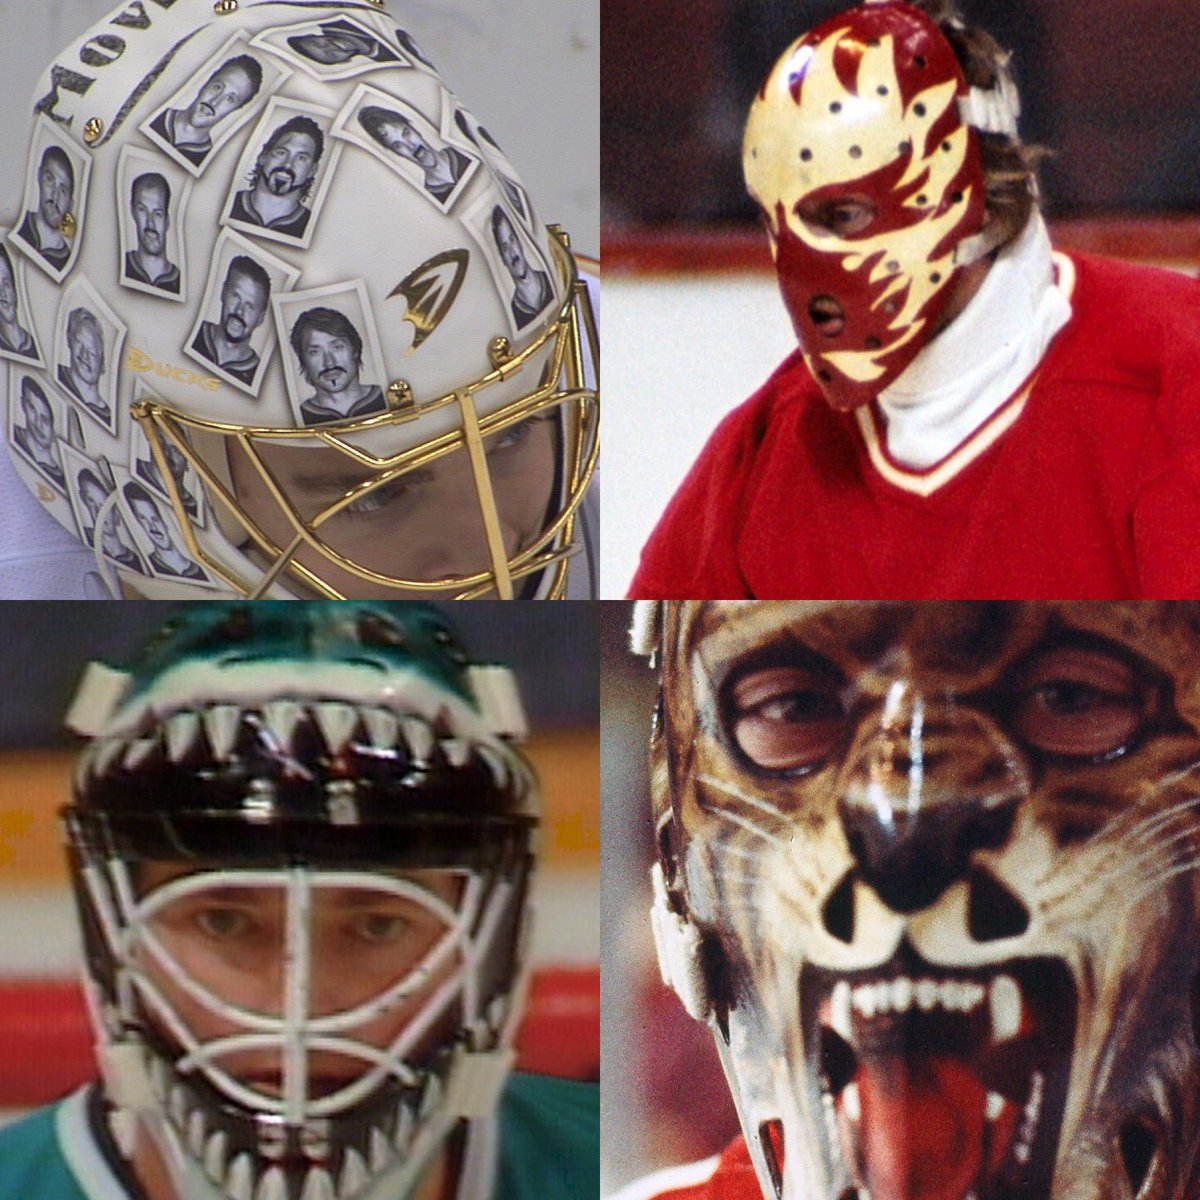 Nhl Network On Twitter What Is Your Favorite Goalie Mask Ever You